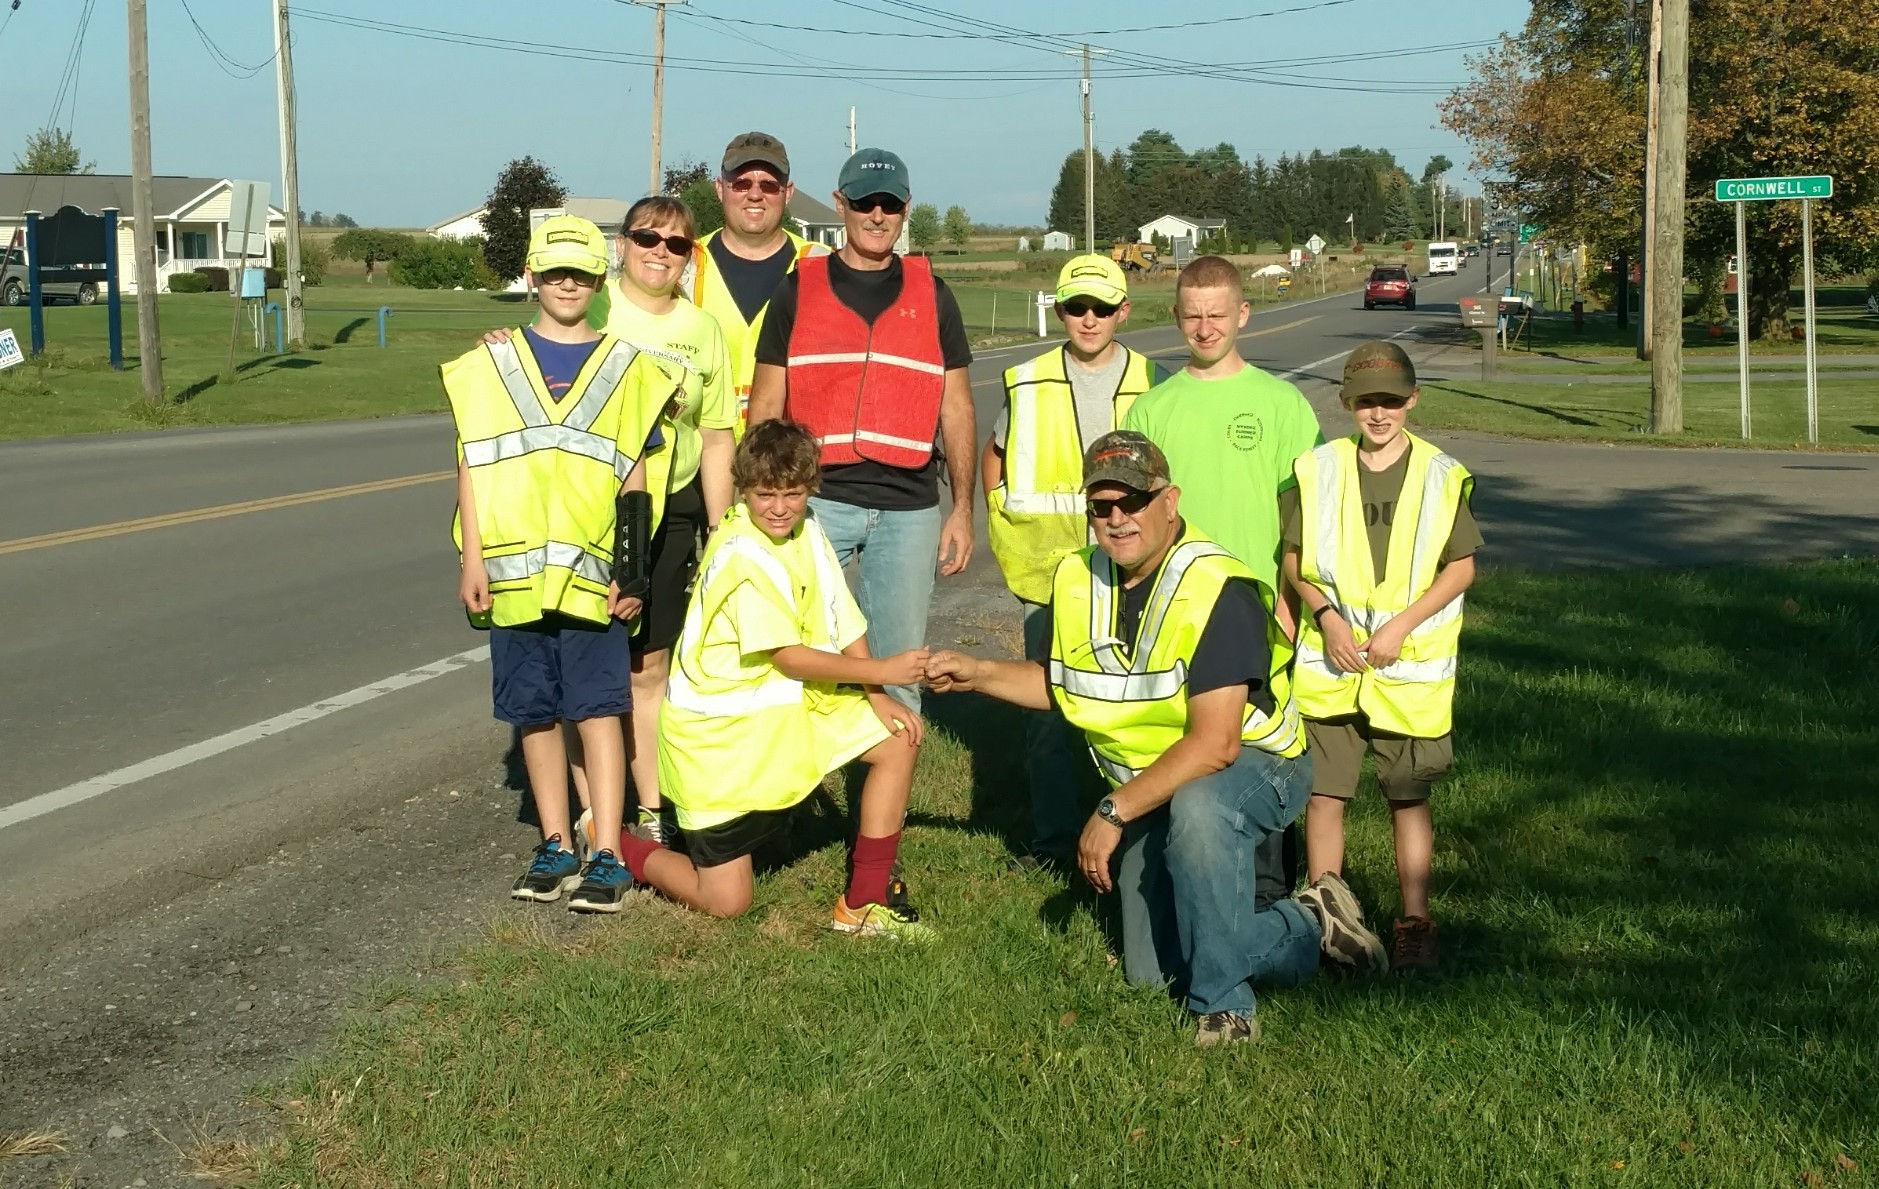 Cleaning up in Penn Yan (photo)